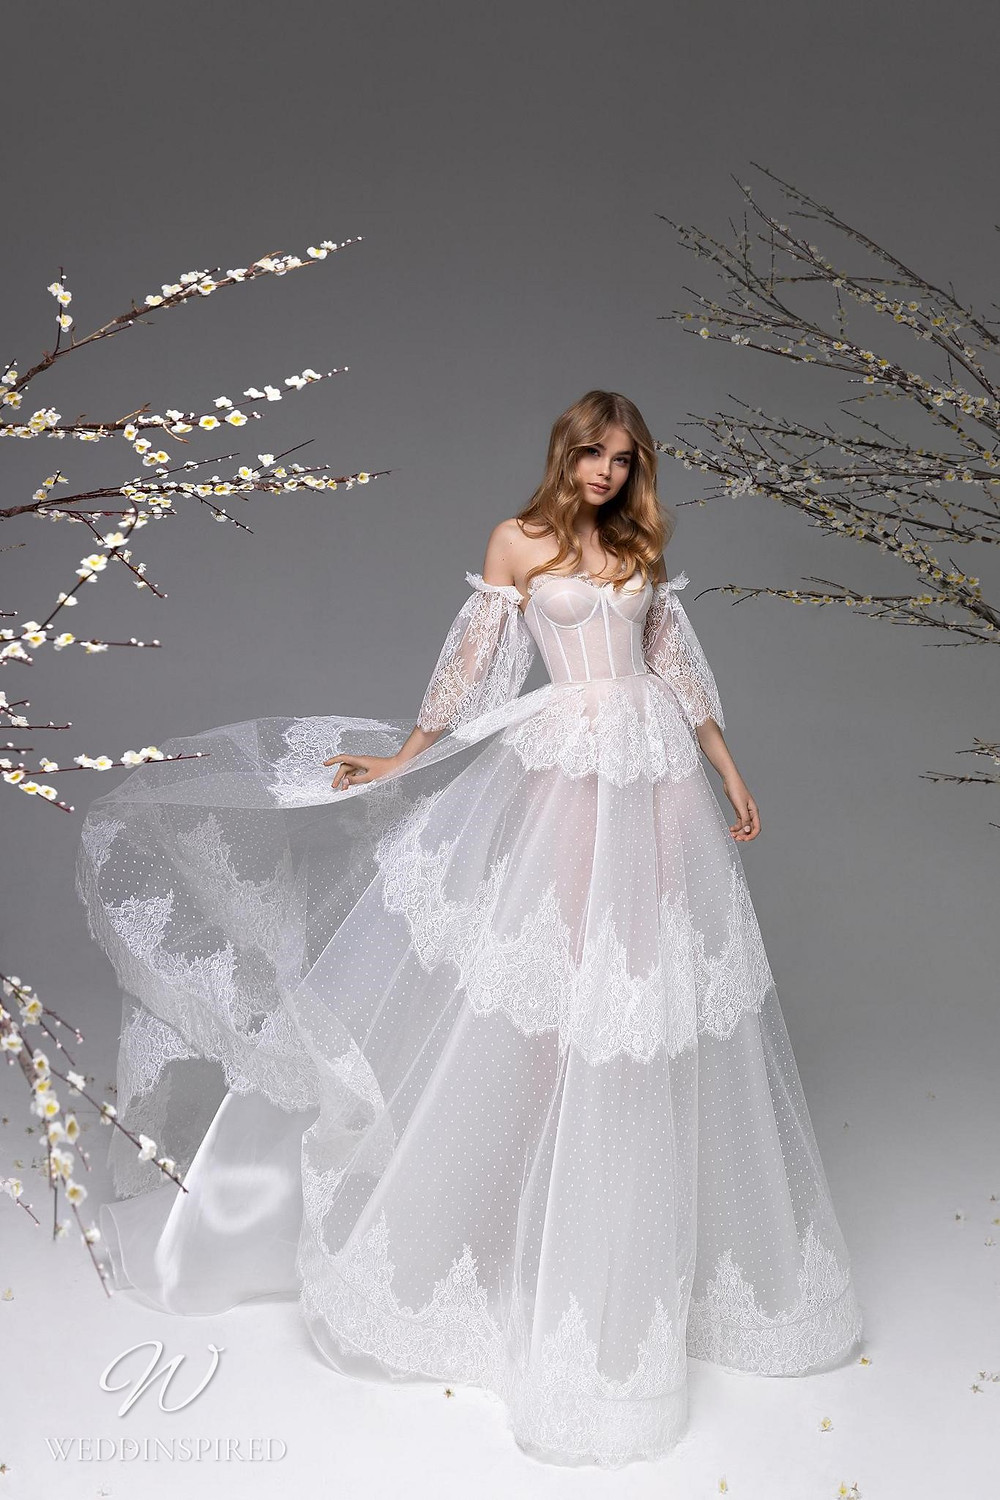 A Ricca Sposa tulle and lace ball gown wedding dress